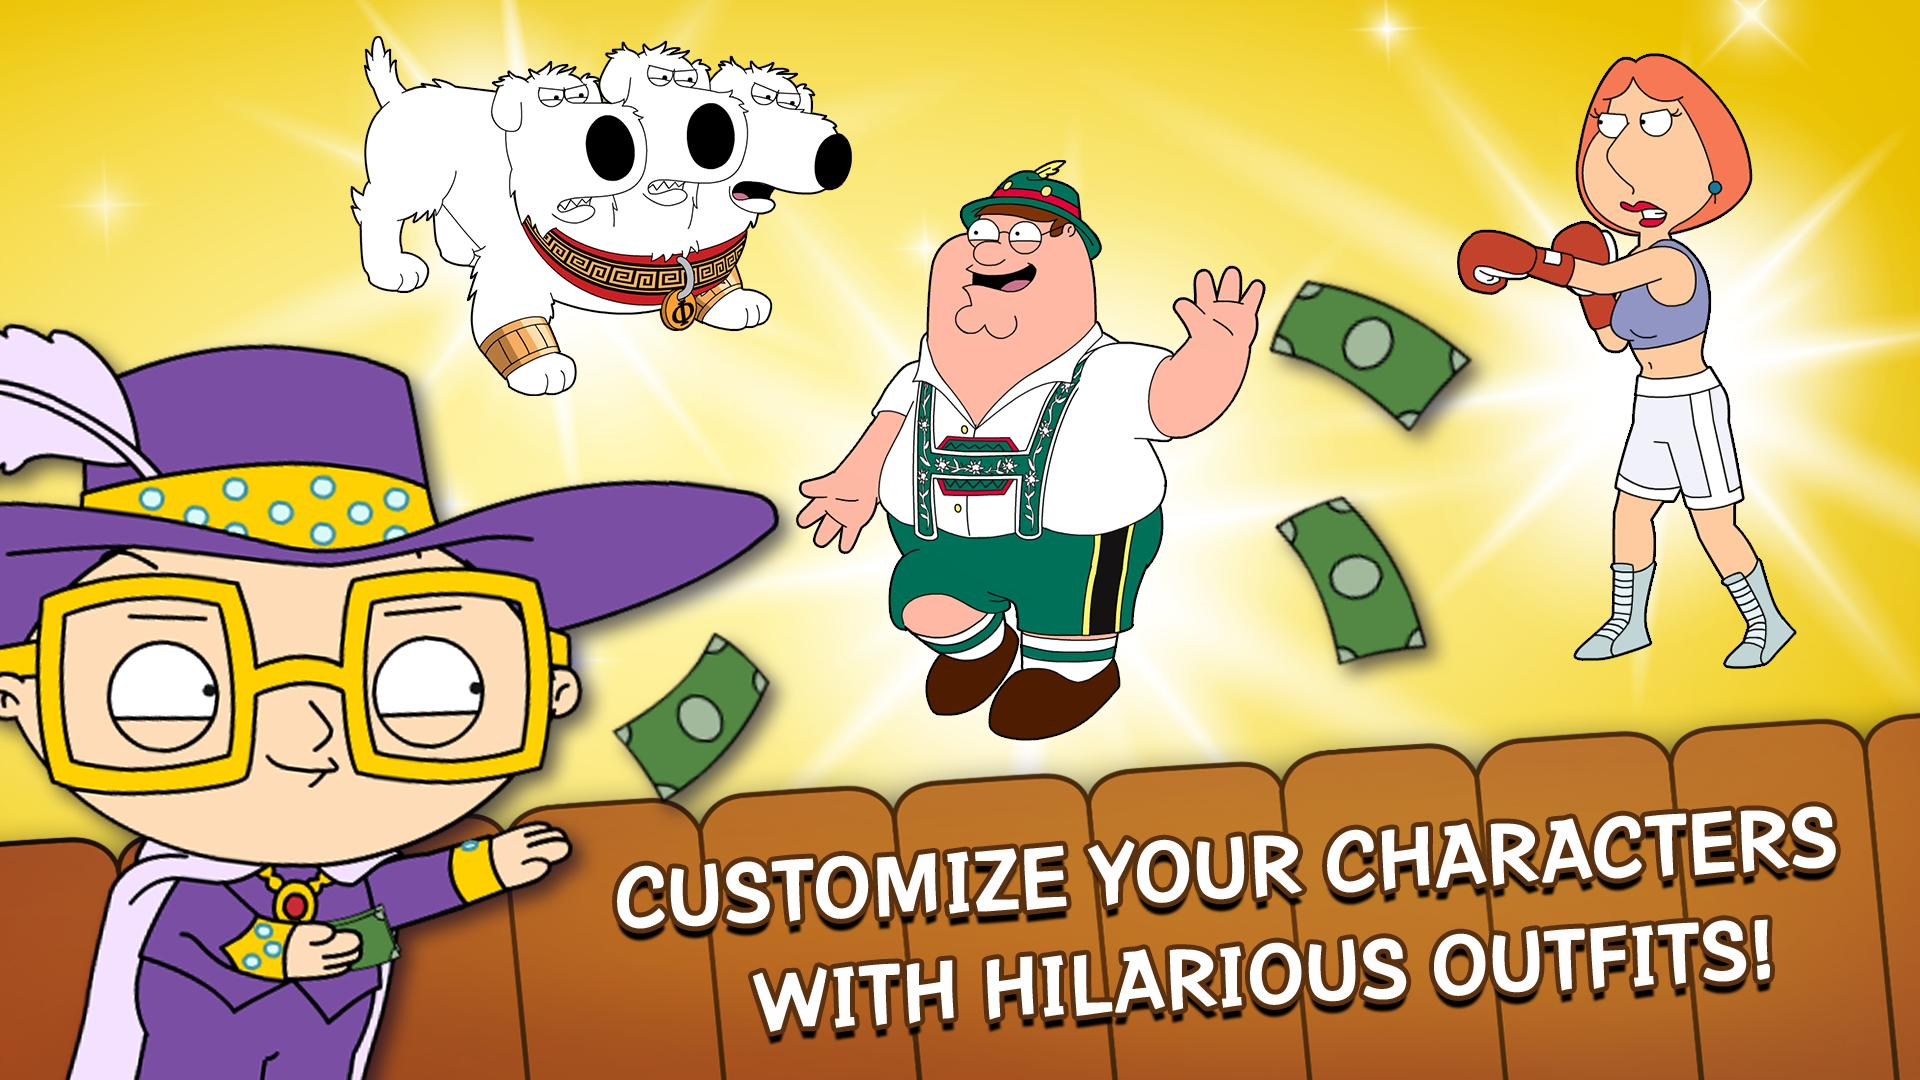 Family Guy The Quest for Stuff 3.8.1 Screenshot 4